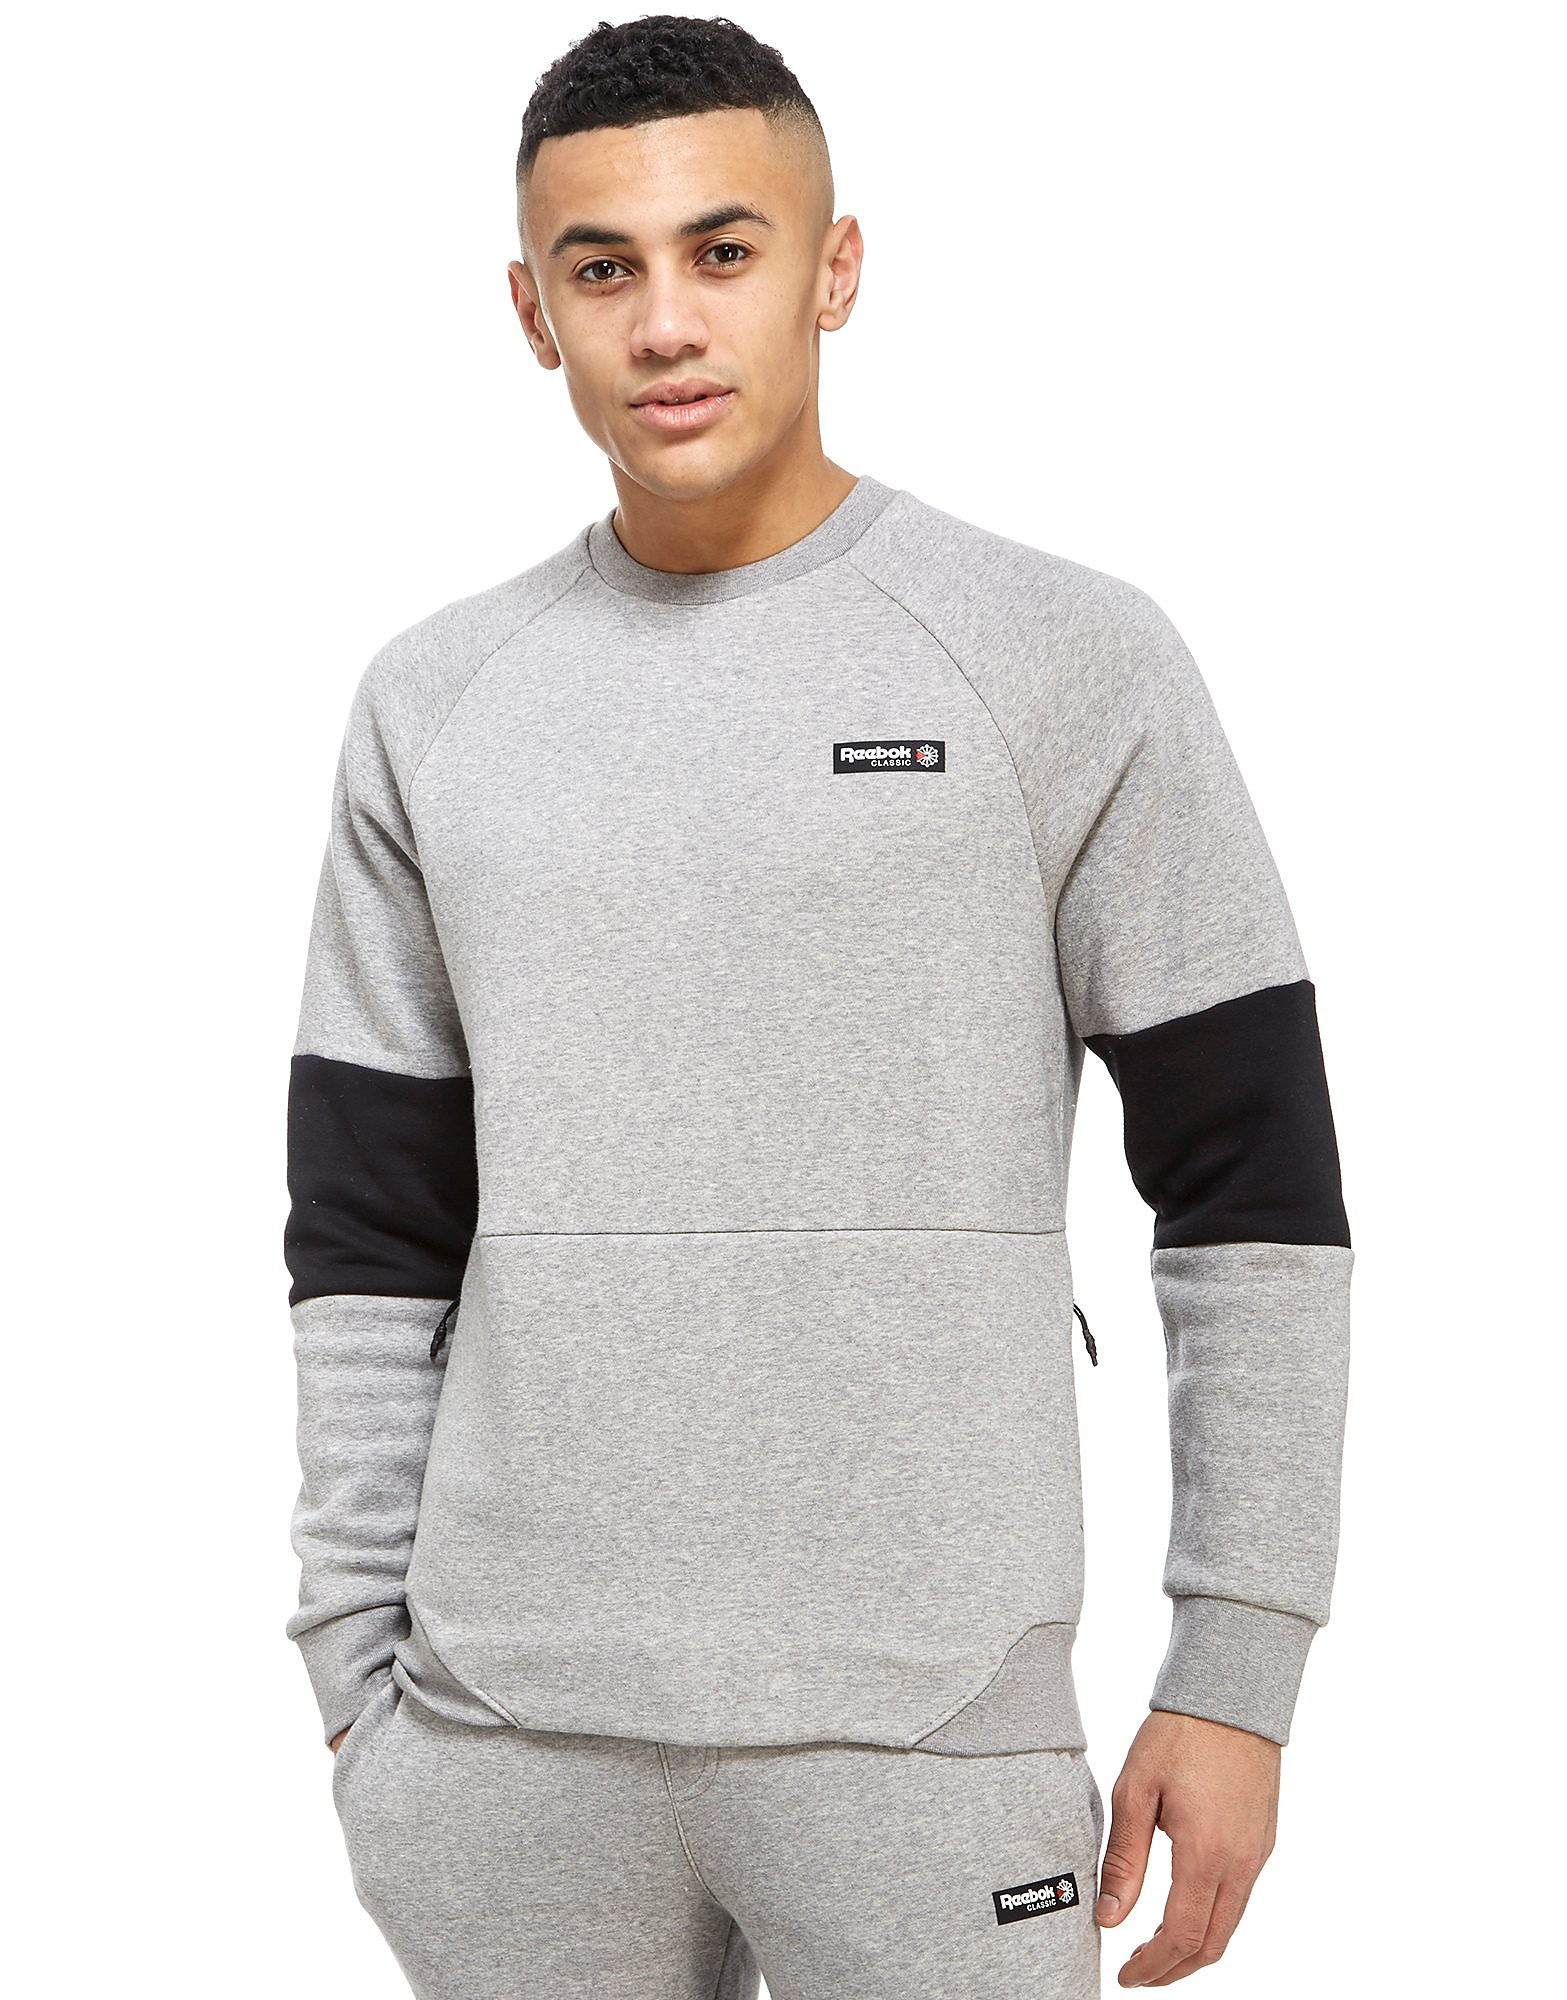 Reebok Classic Pocket Sweatshirt